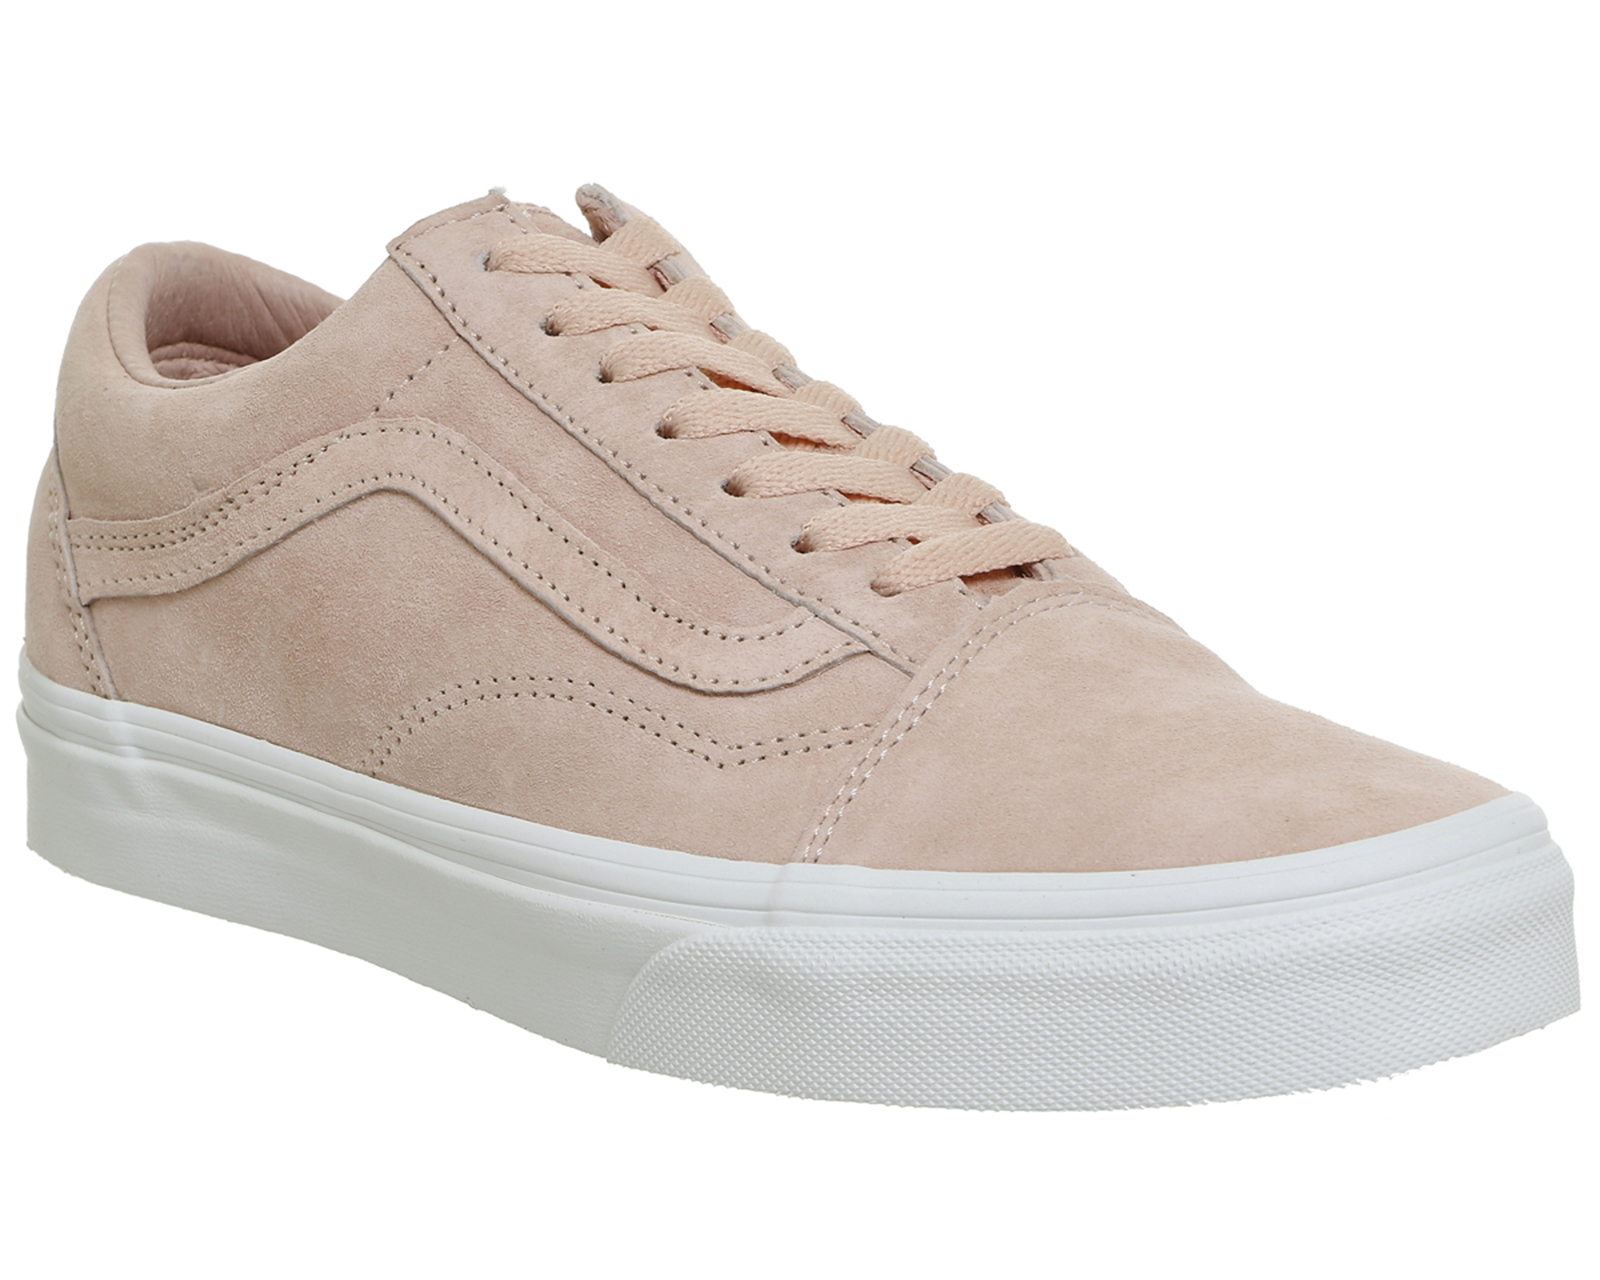 2dd3d728b2 Sentinel Womens Vans Pink Suede Lace Up Trainers Size UK 3  Ex-Display